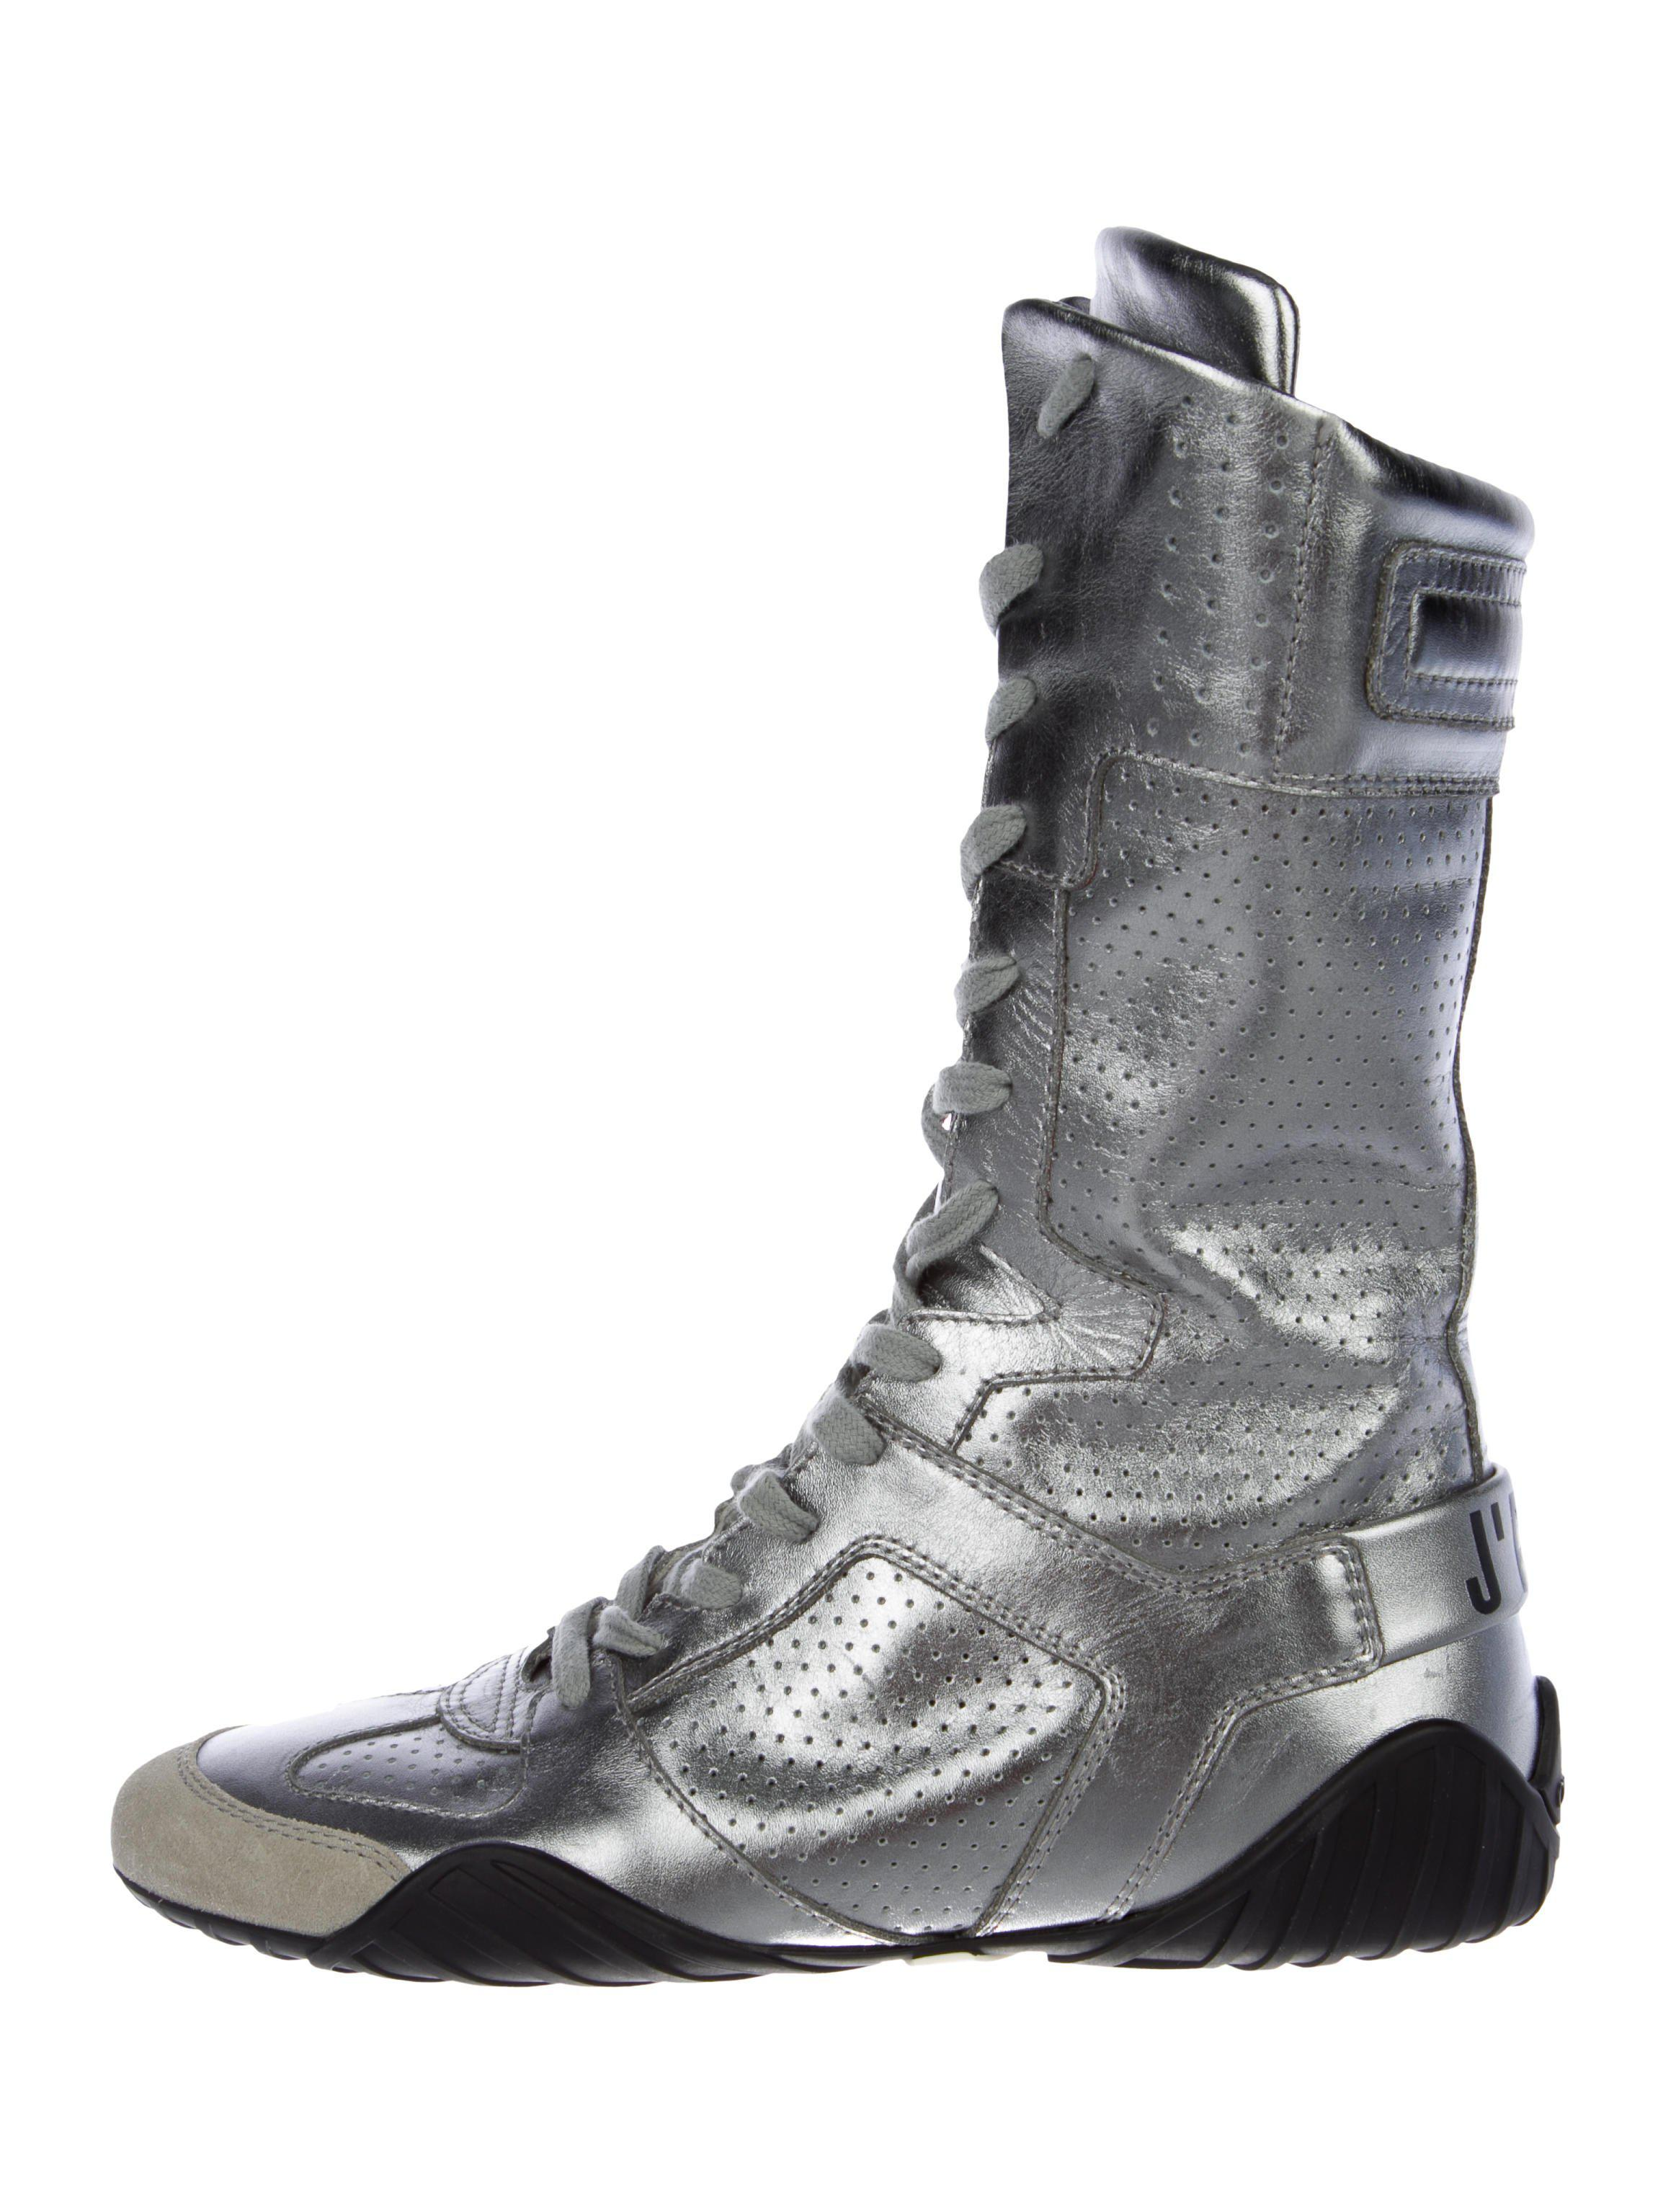 Christian Dior 2017 Leather D-Fence Boots cheap sale from china finishline cheap price clearance Cheapest clearance get authentic oiManBNXn